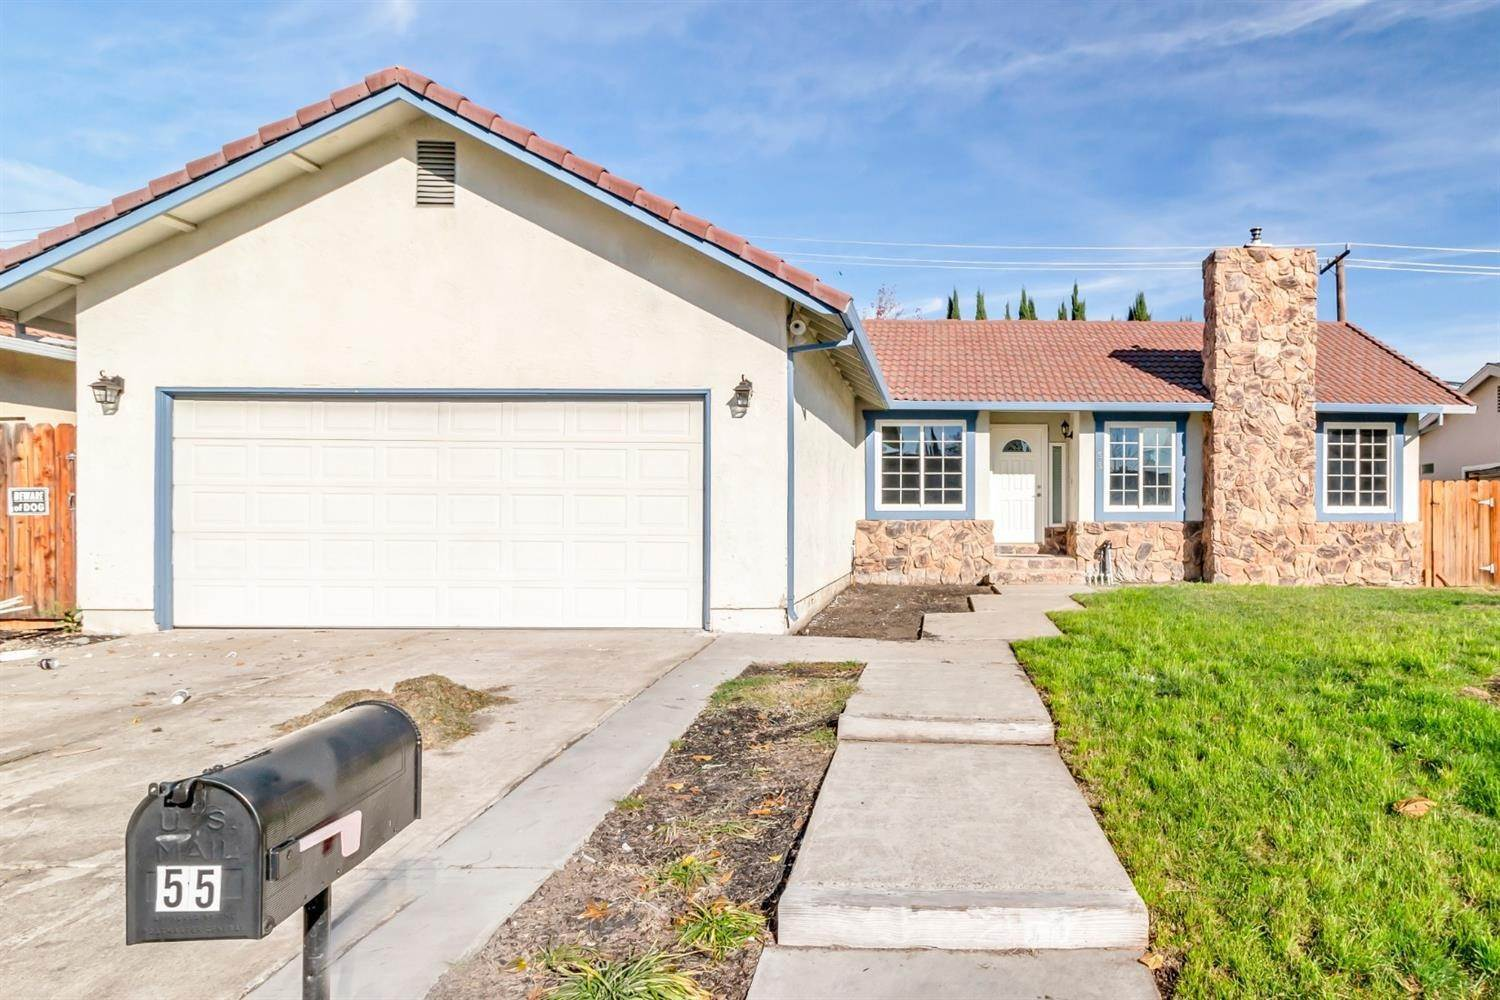 Single Family Homes for Active at 55 Carmel Way Tracy, California 95376 United States